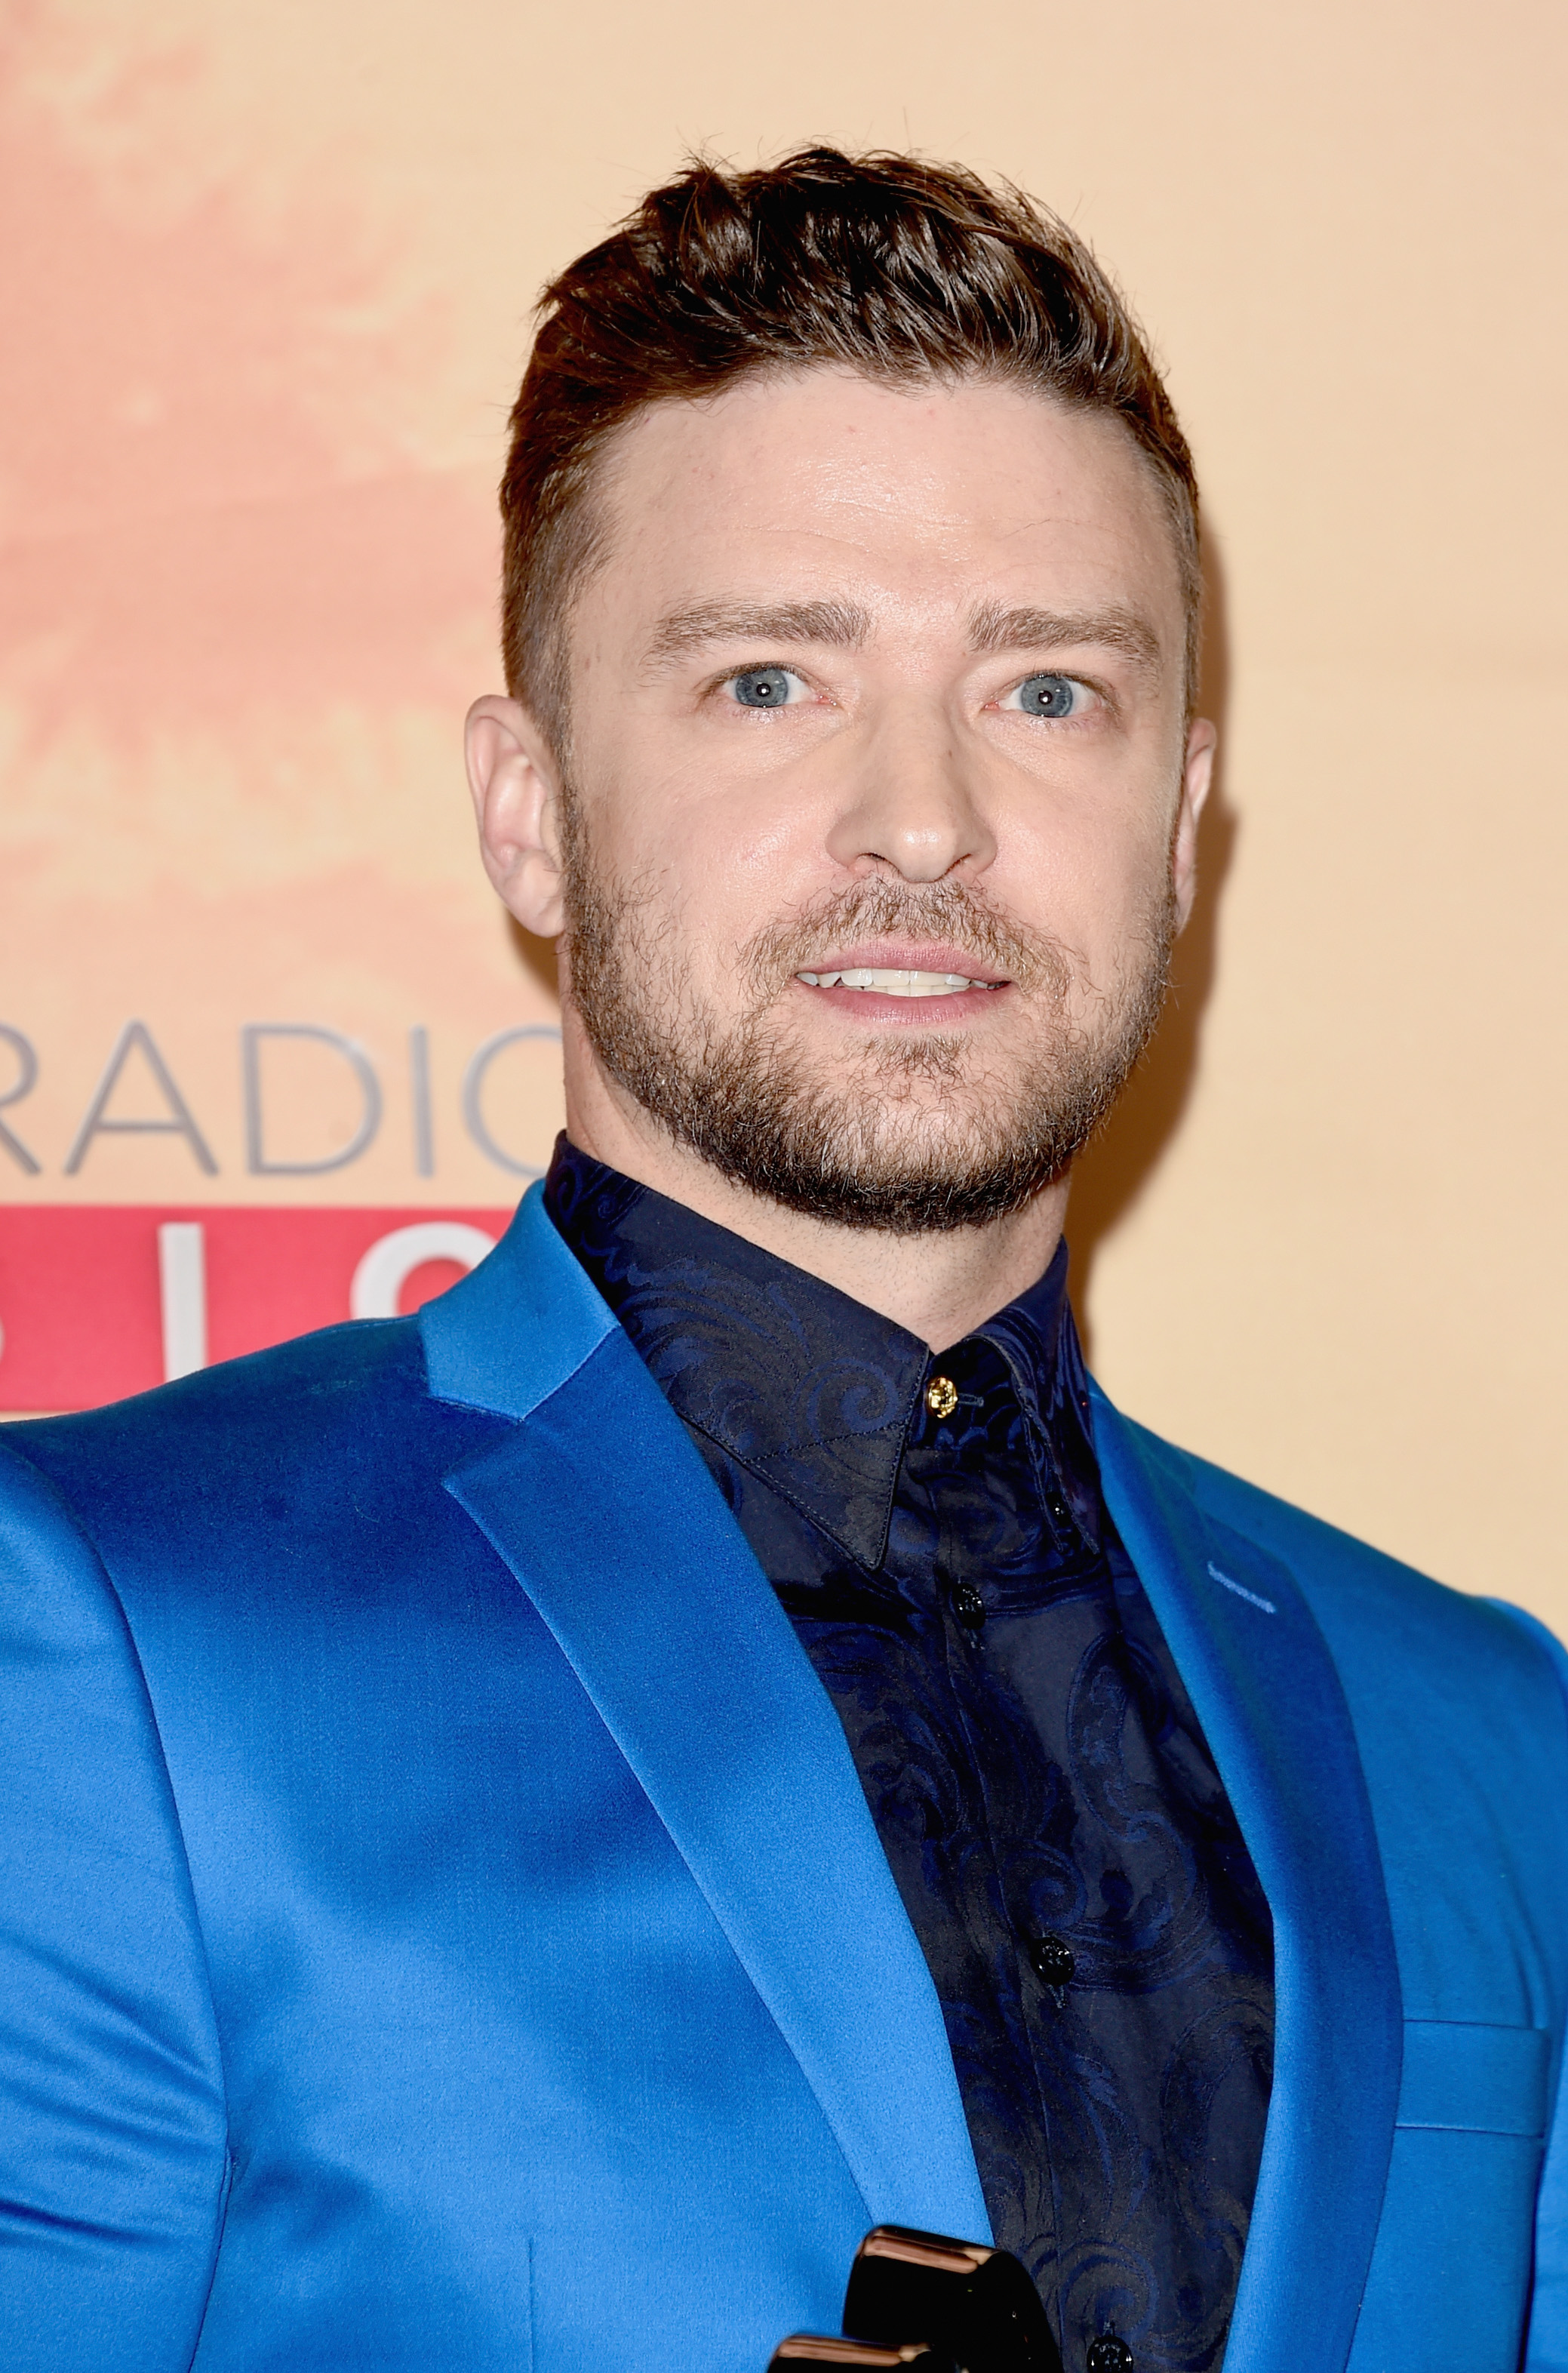 Justin Timberlake Has Changed Since Becoming A Dad Lance Bass Agrees